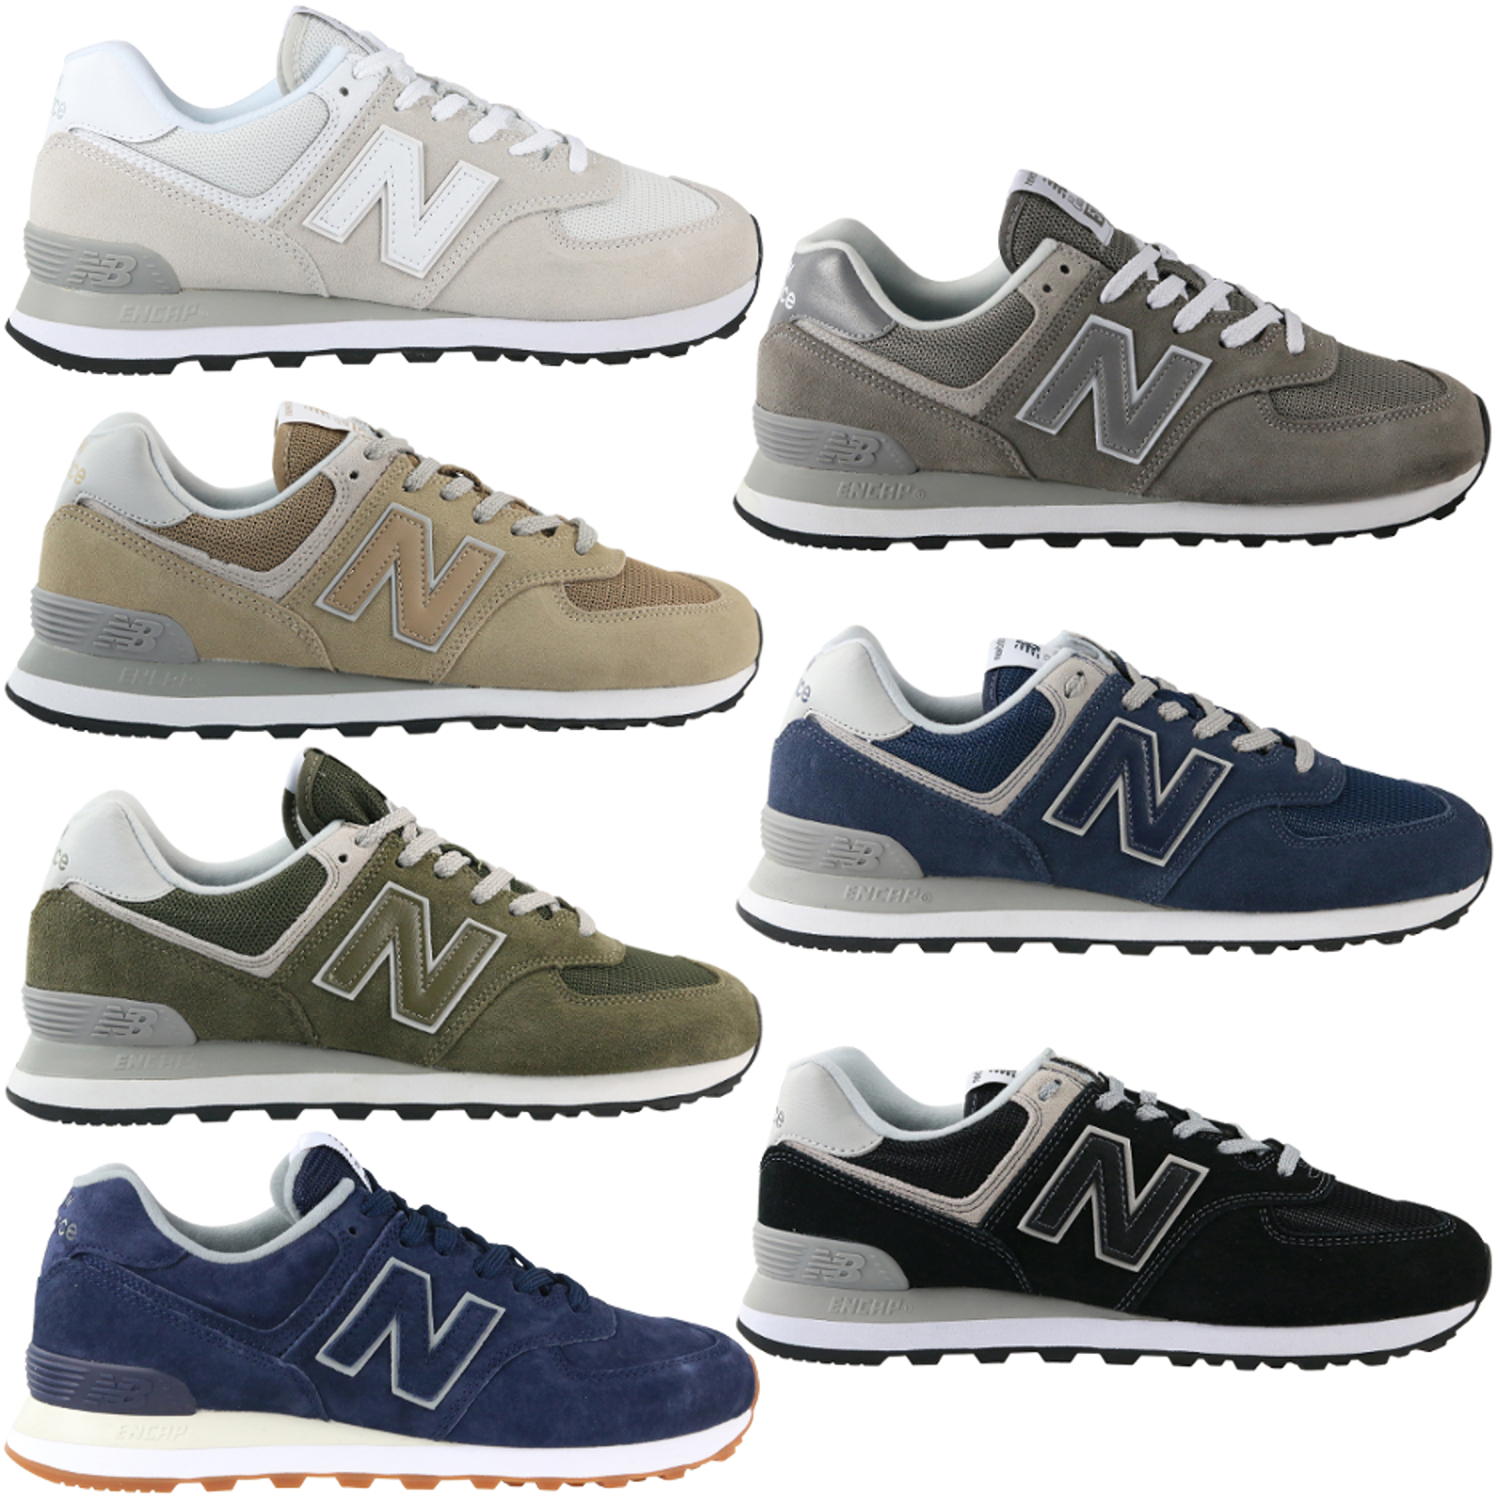 Details about NEW Balance 574 it Sea Escape Sneaker Shoes Mens ml574 show original title